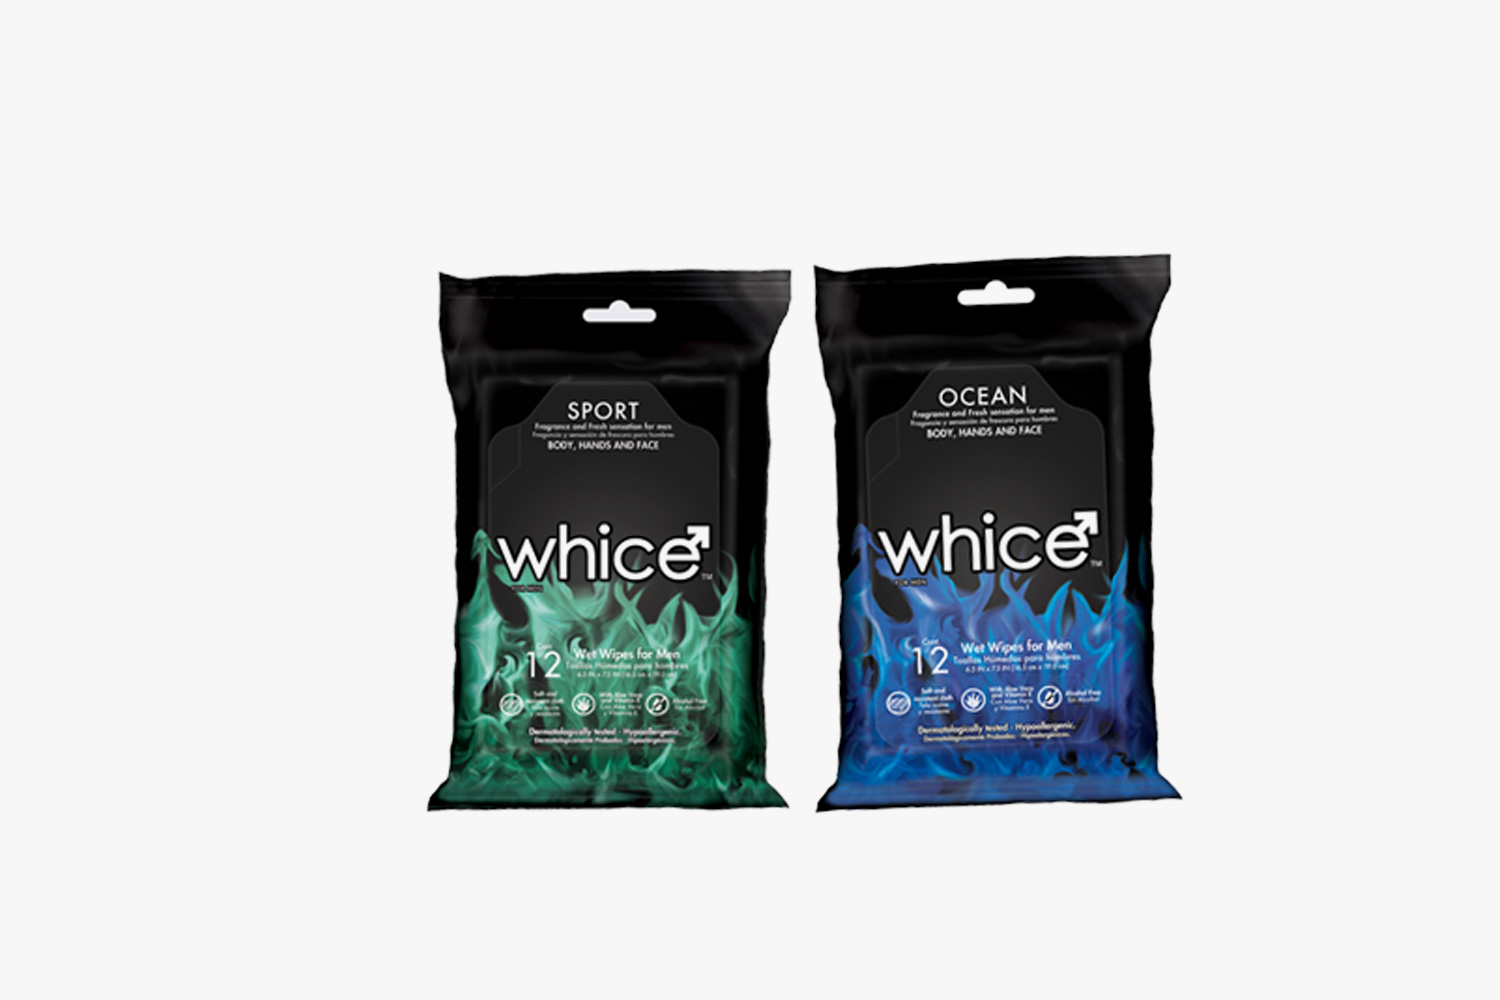 whice product image